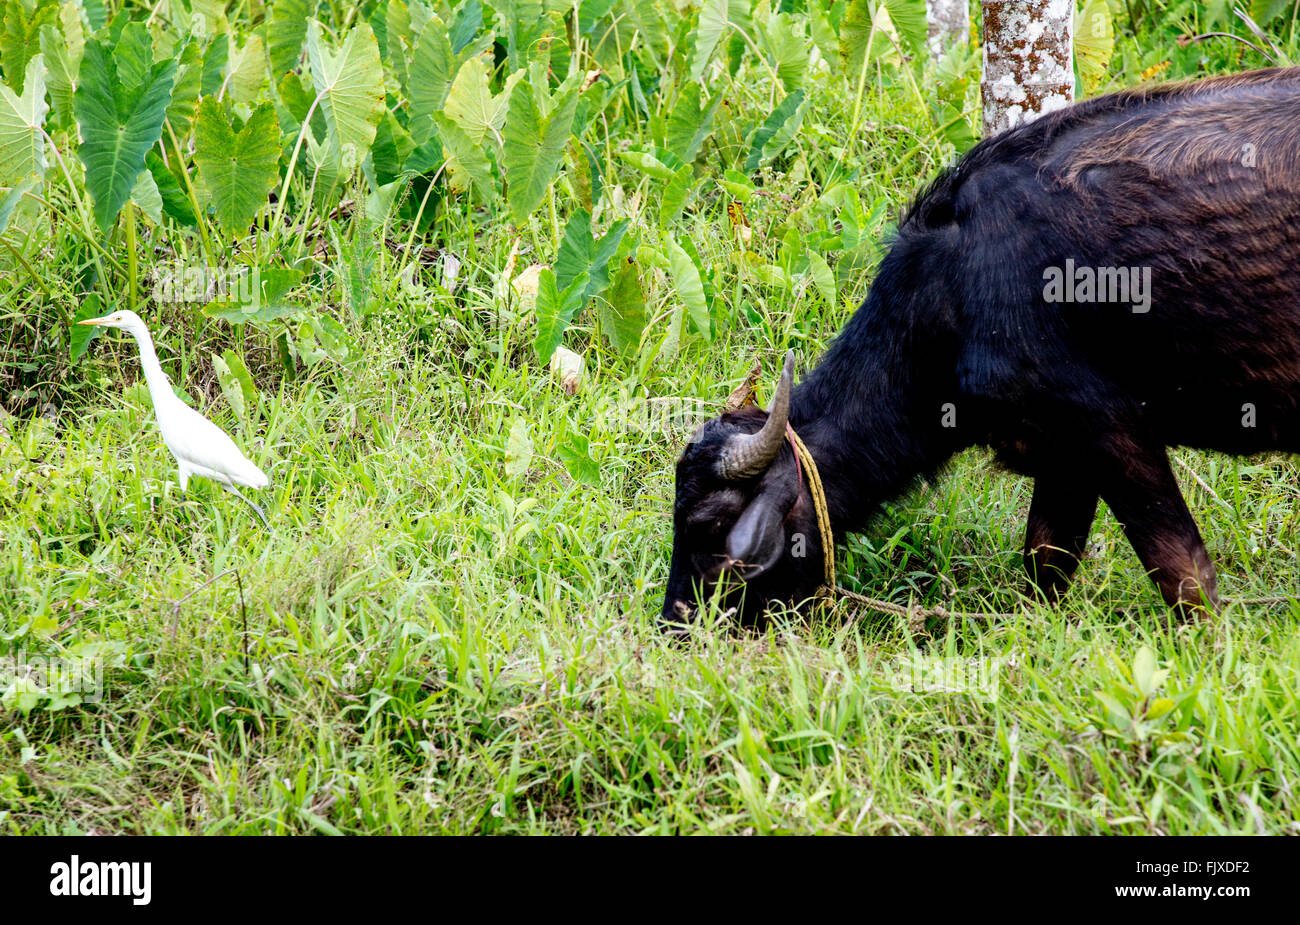 Cow and Egret Bird In Kerala India - Stock Image